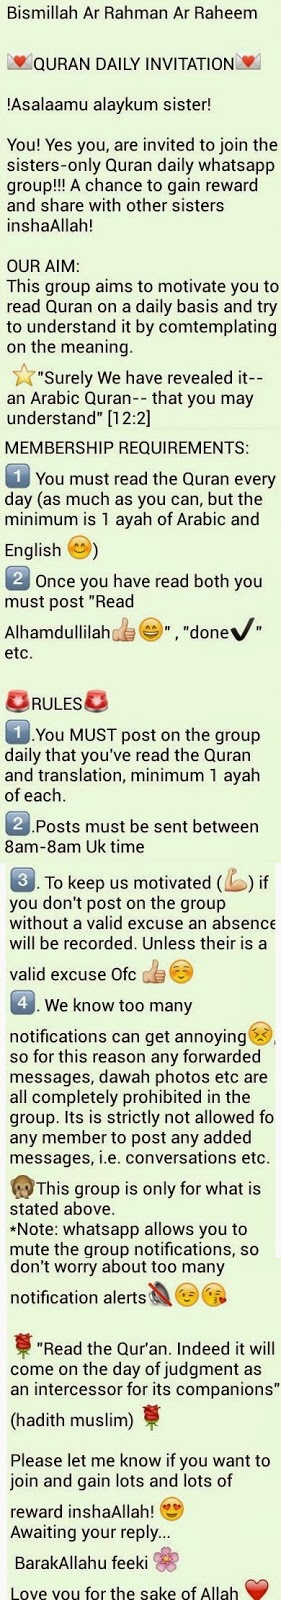 whatsapp rules for a group